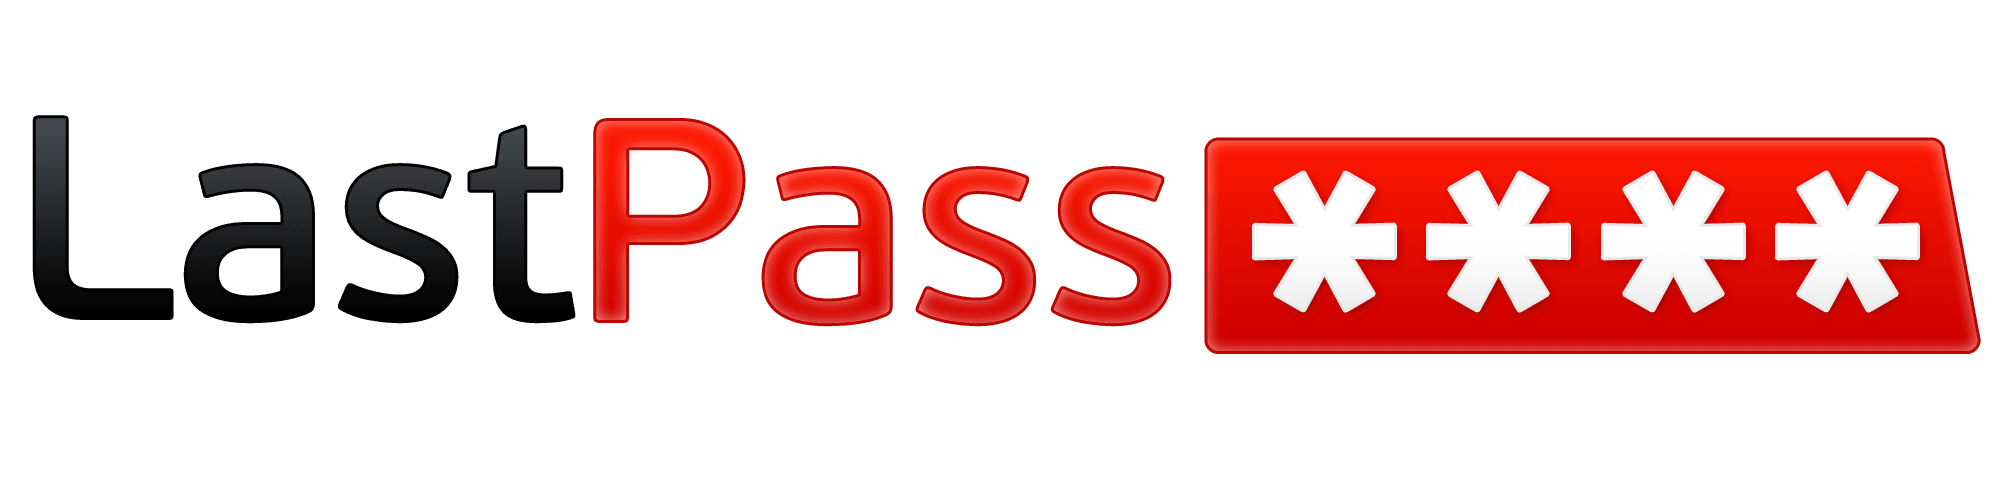 LastPass Password Manager updated to version 3.0 and gets several new features